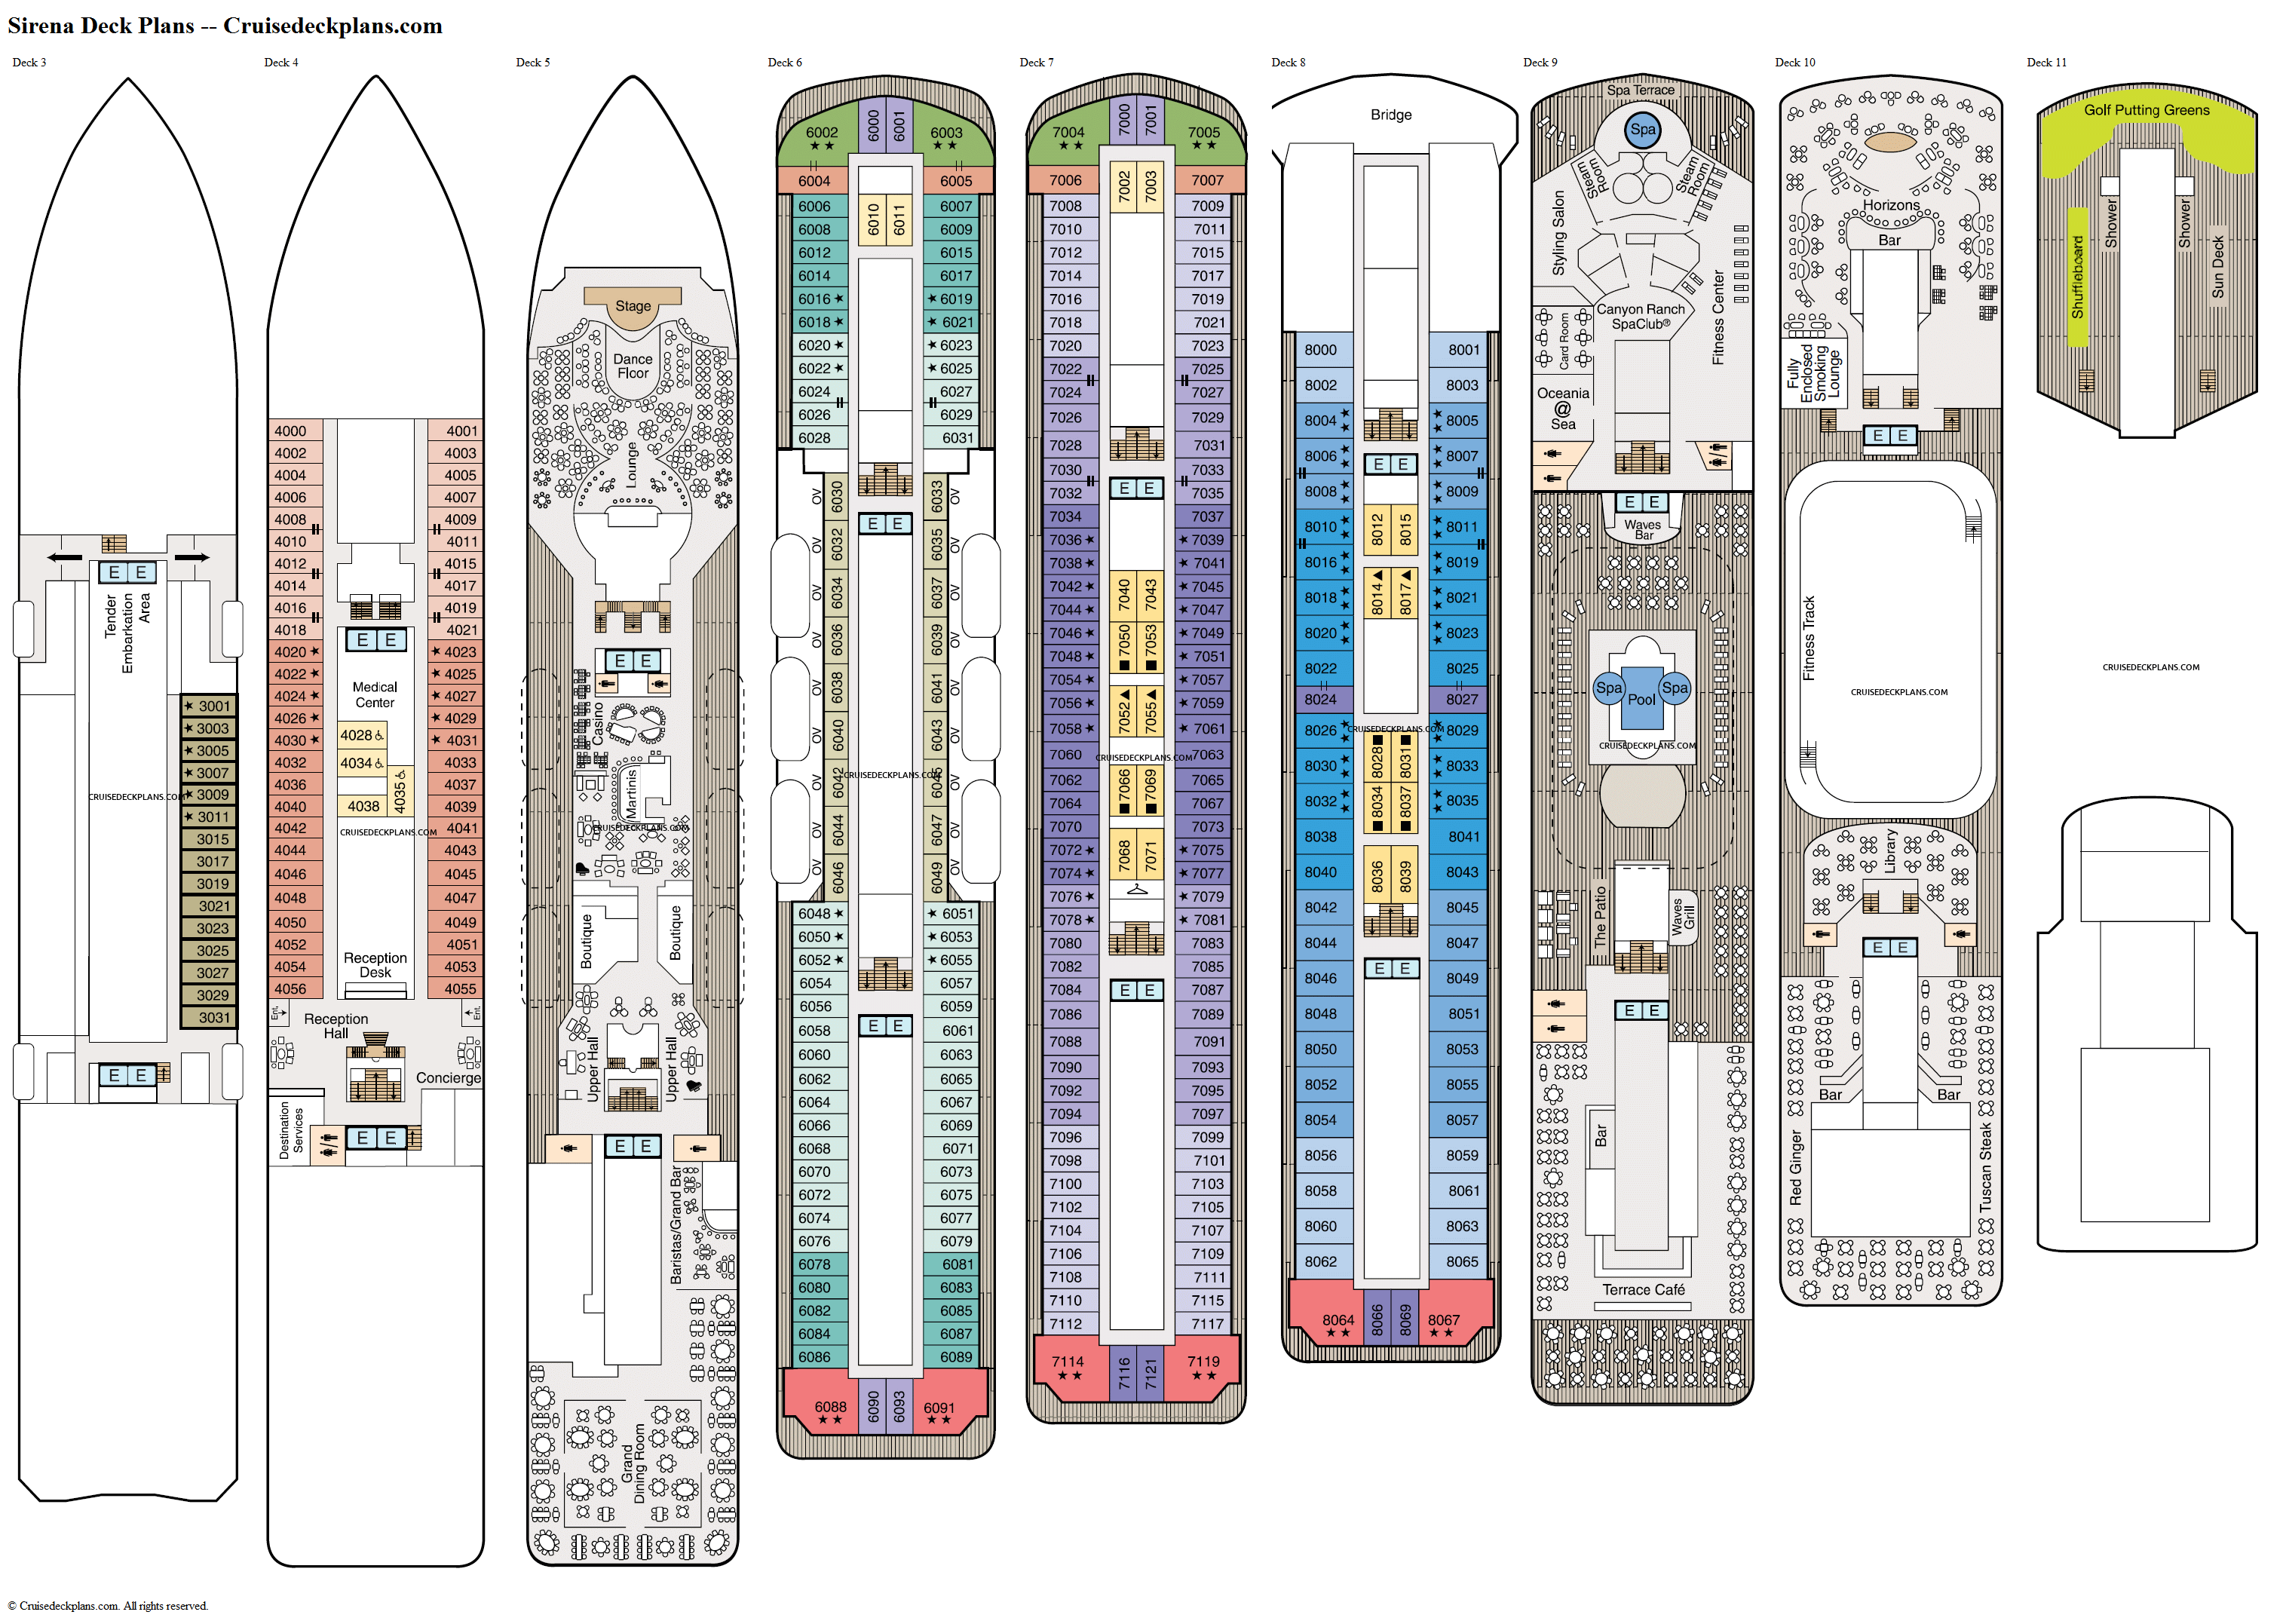 Sirena deck plans image